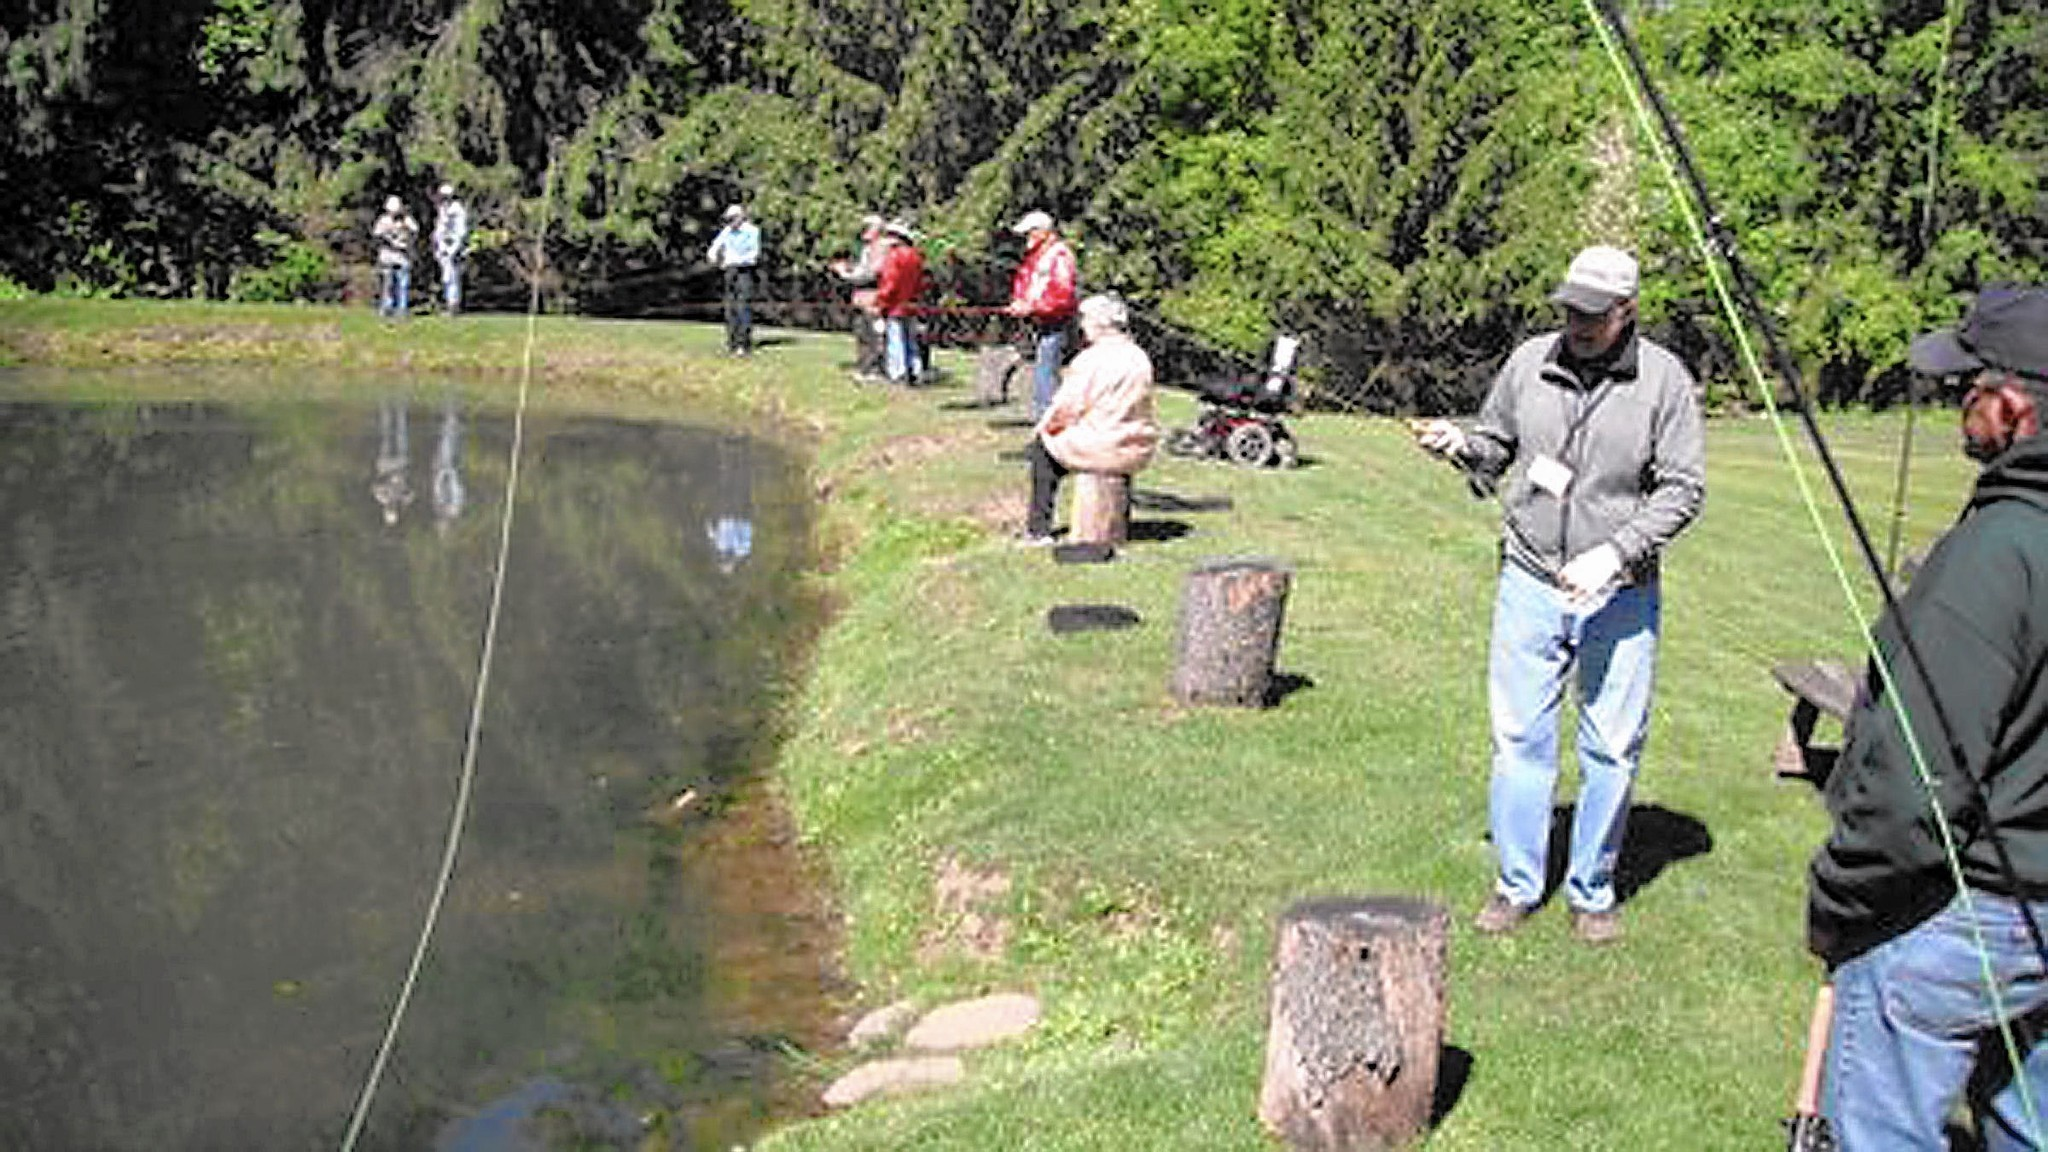 Lunkerfest on Lehigh River means good fishing - The Morning Call